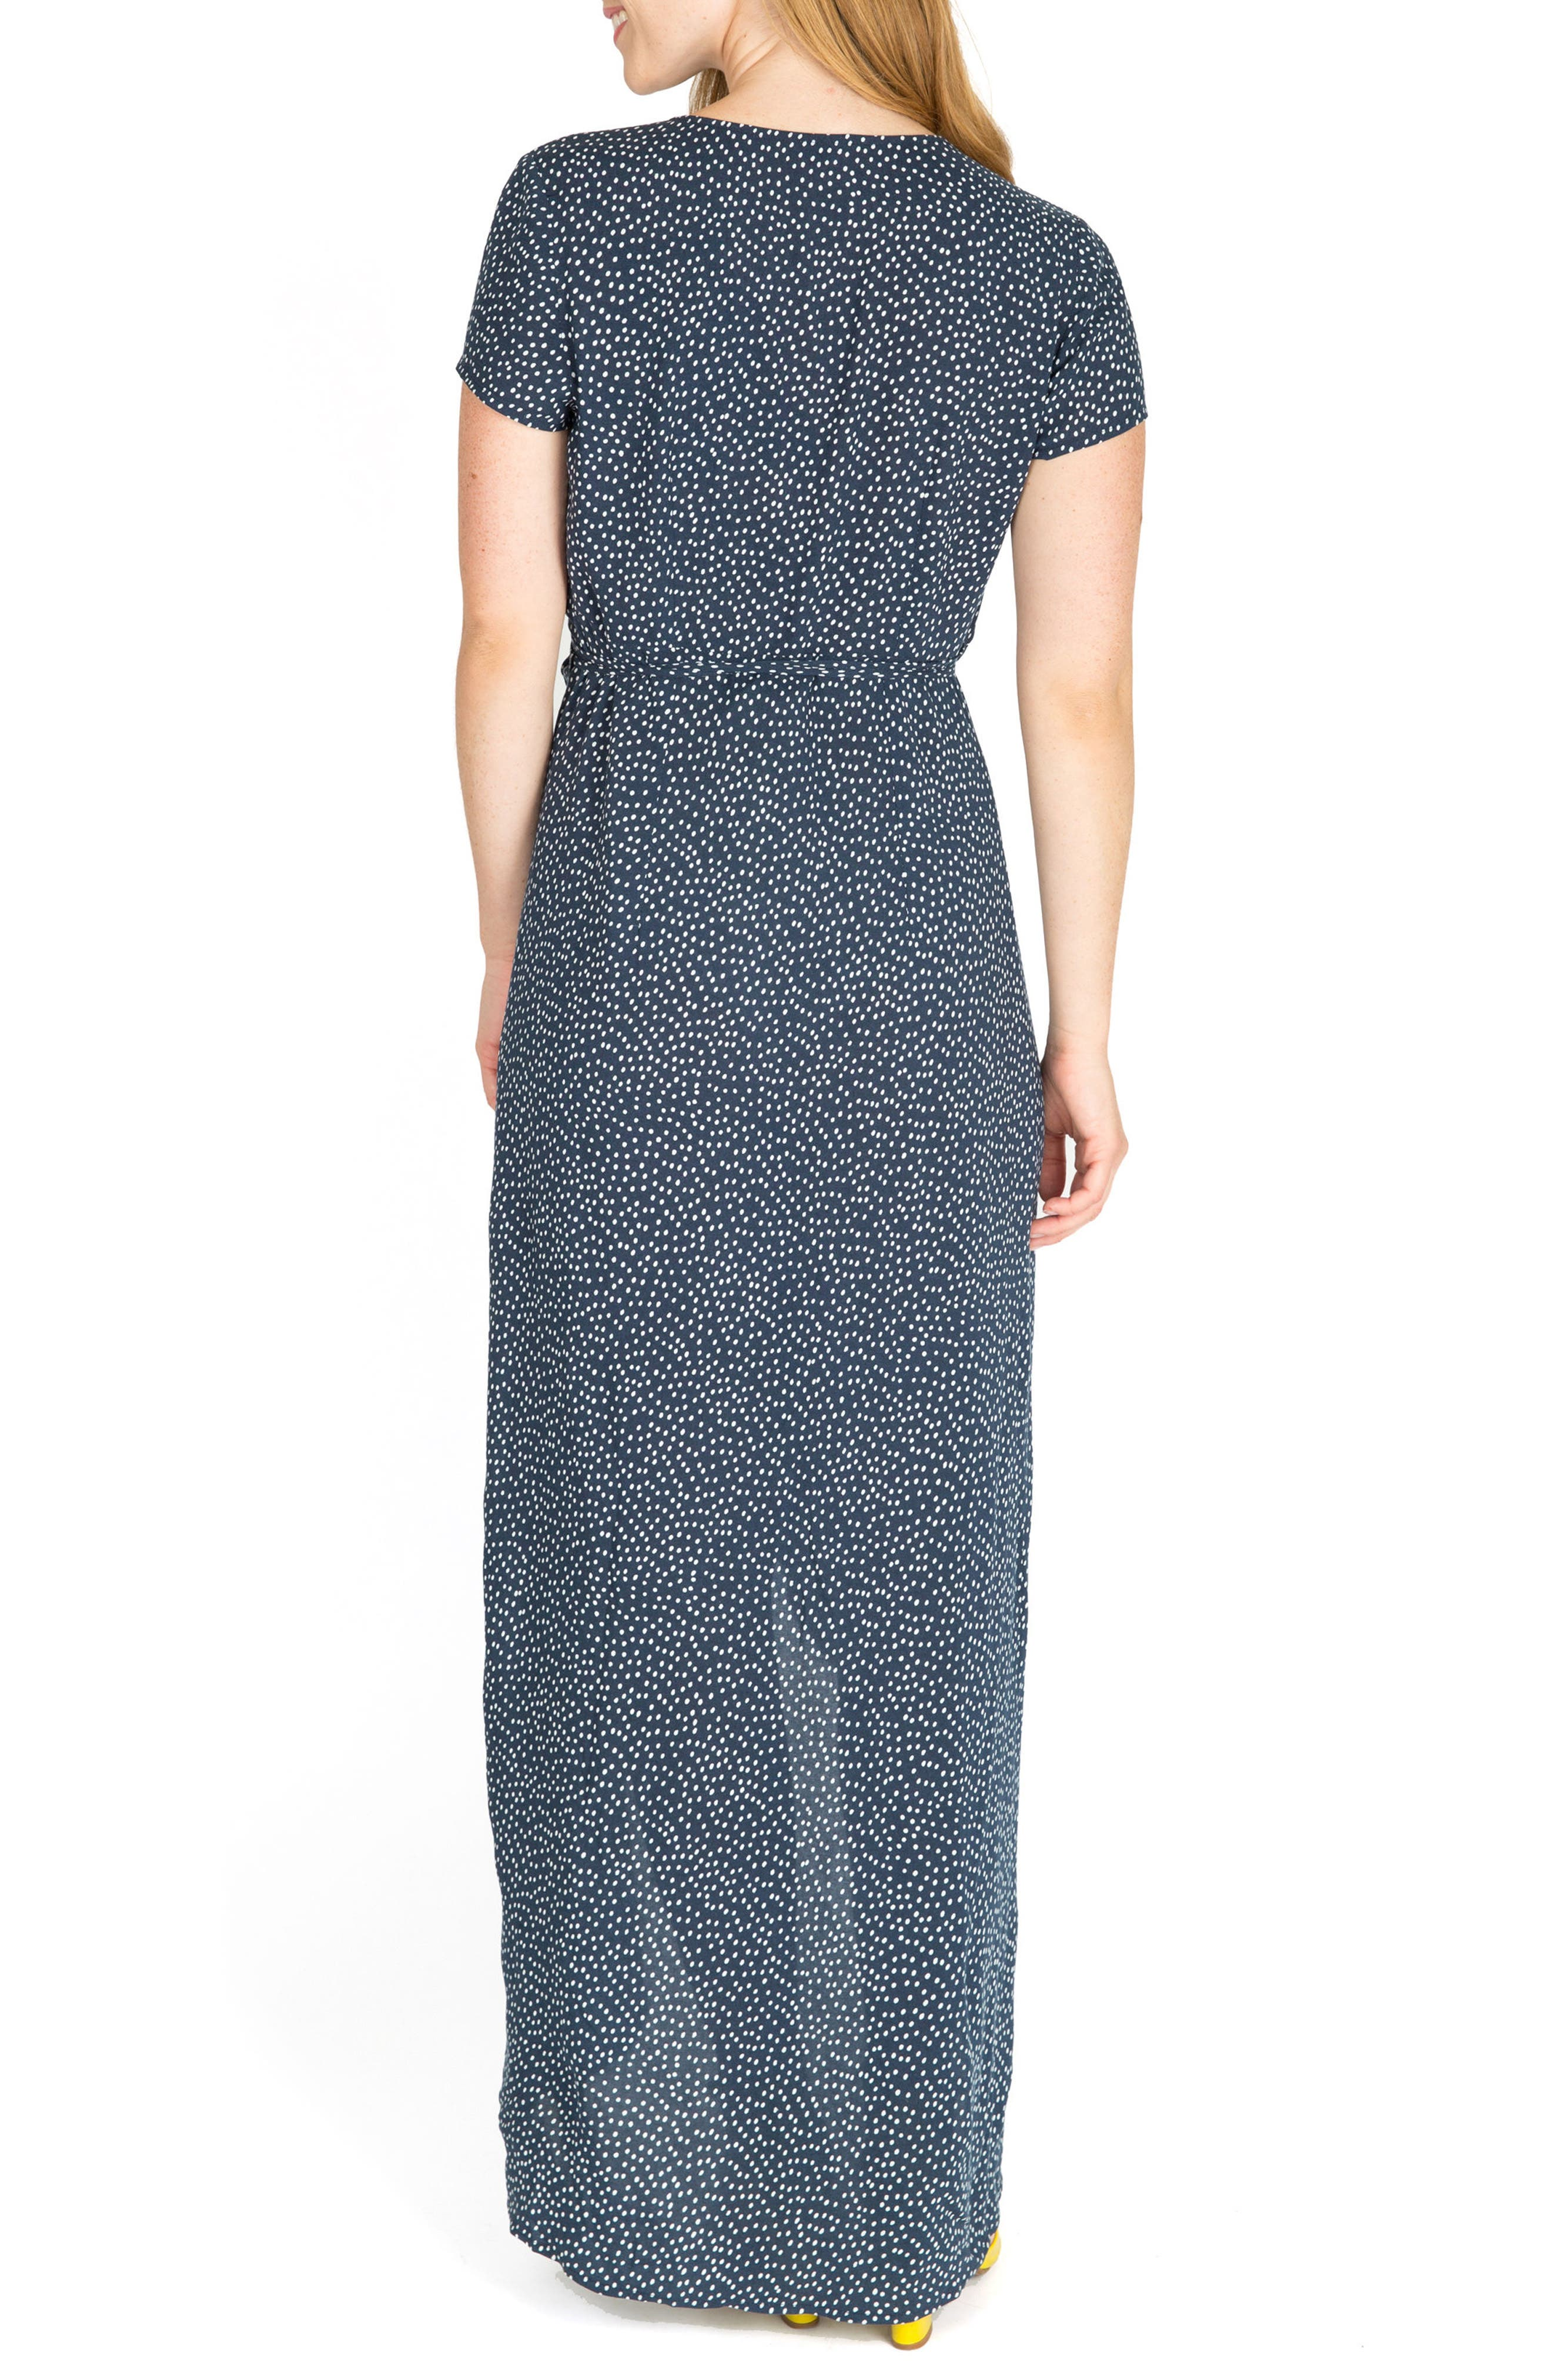 Delilah Maternity/Nursing Wrap Maxi Dress,                             Alternate thumbnail 2, color,                             NAVY DOT